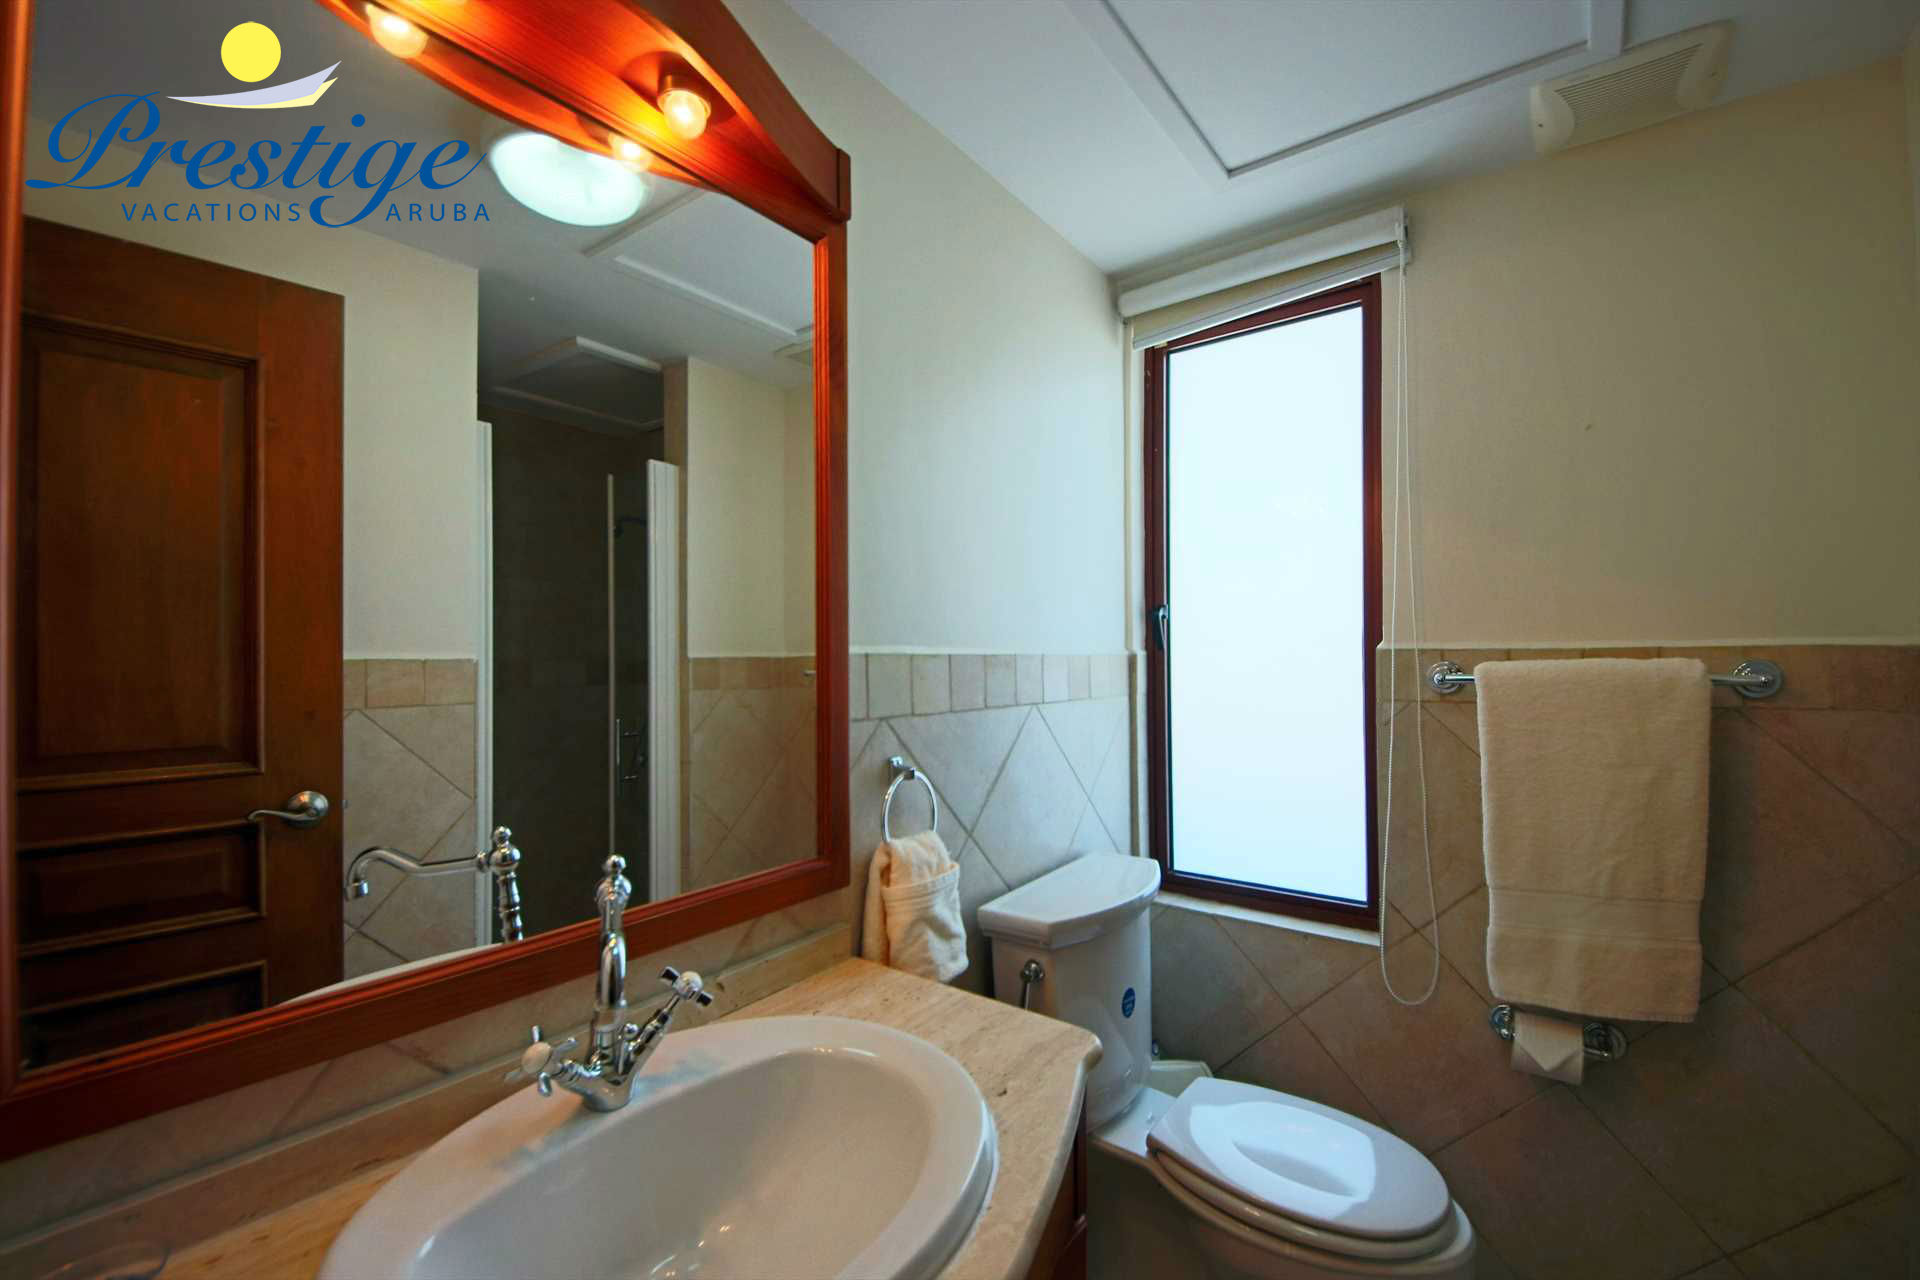 The third en-suite bathroom with a shower